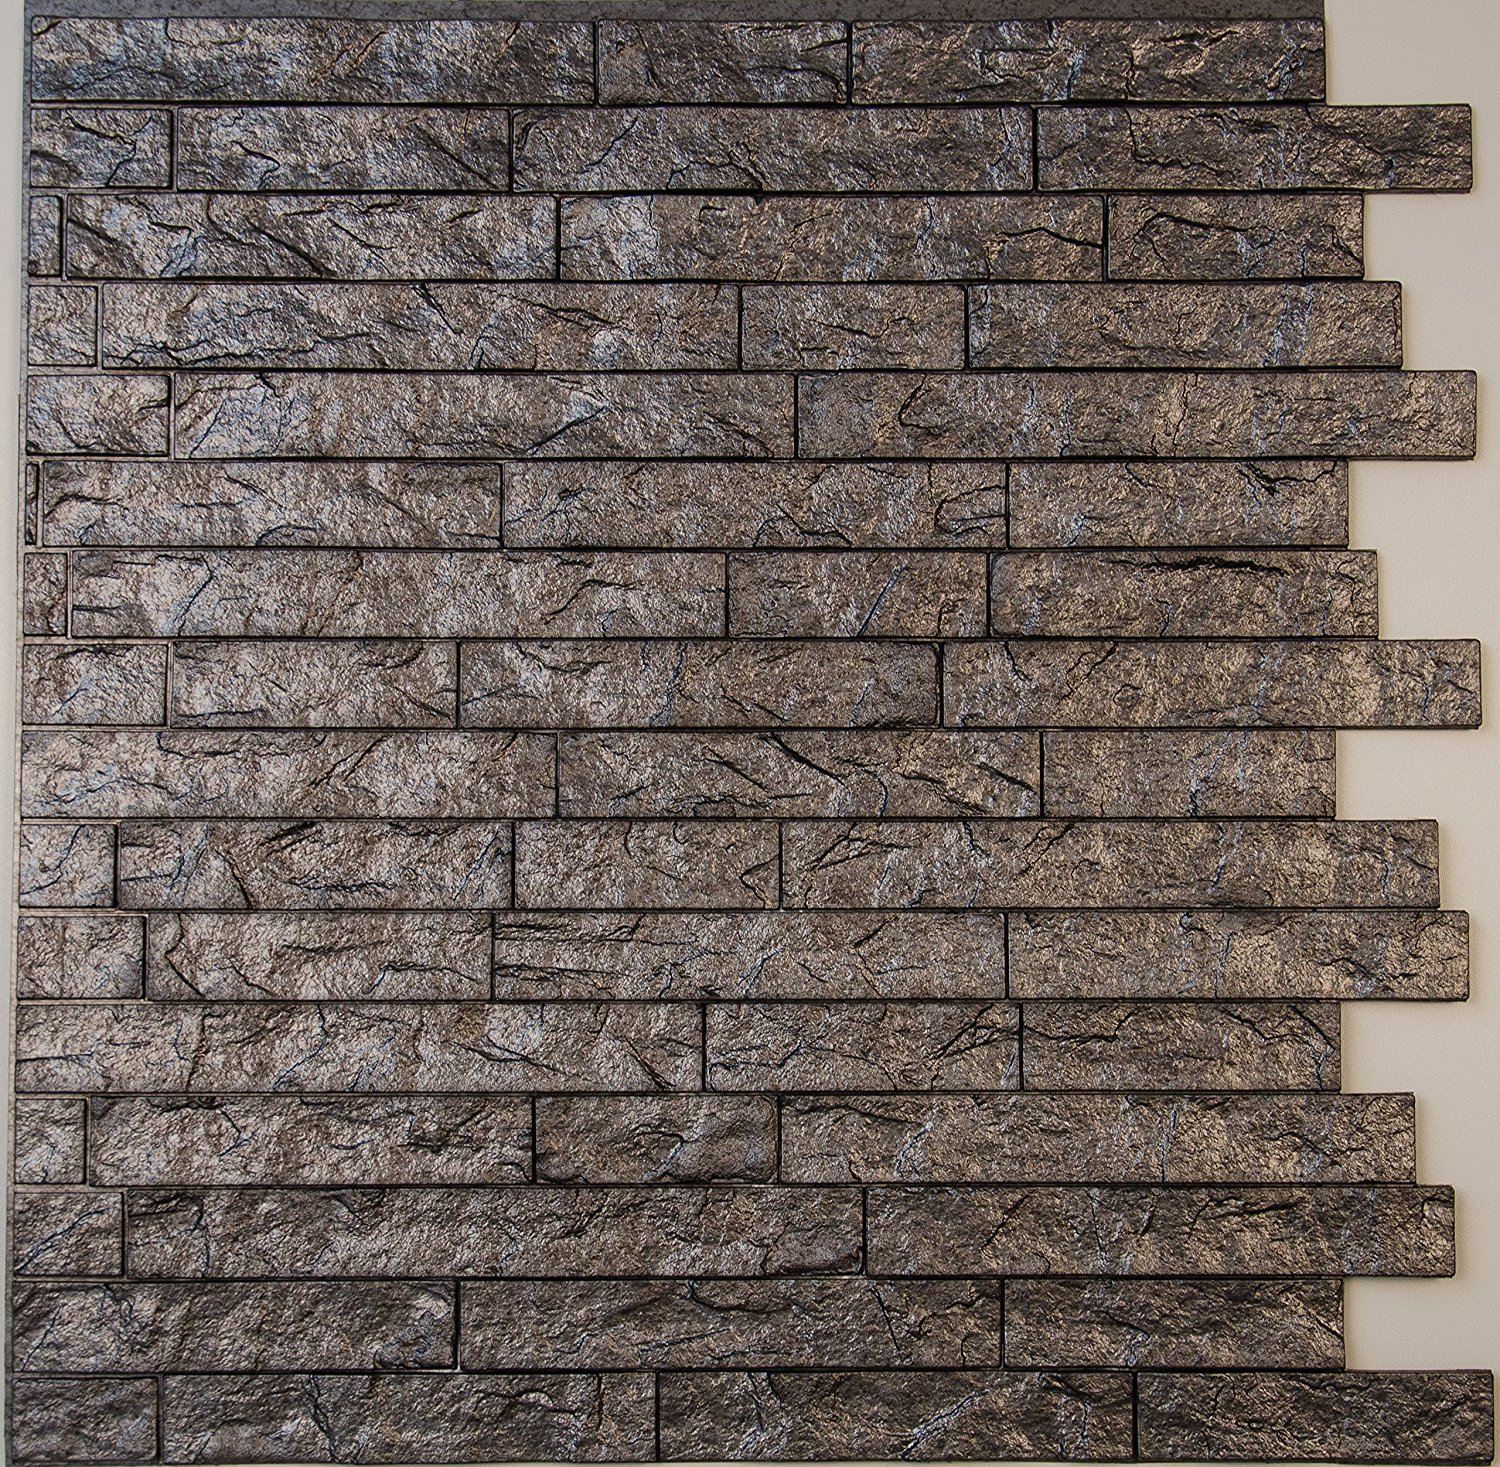 """Ledge Stone 3D Wall Panels - lightweight thermoplastic Decorative 3D Wall Tiles for easy Glue Up installation. Portland Cement Color. Pack of 4 tiles (each tile 24""""x24"""" - covers ~4 sq. ft)"""